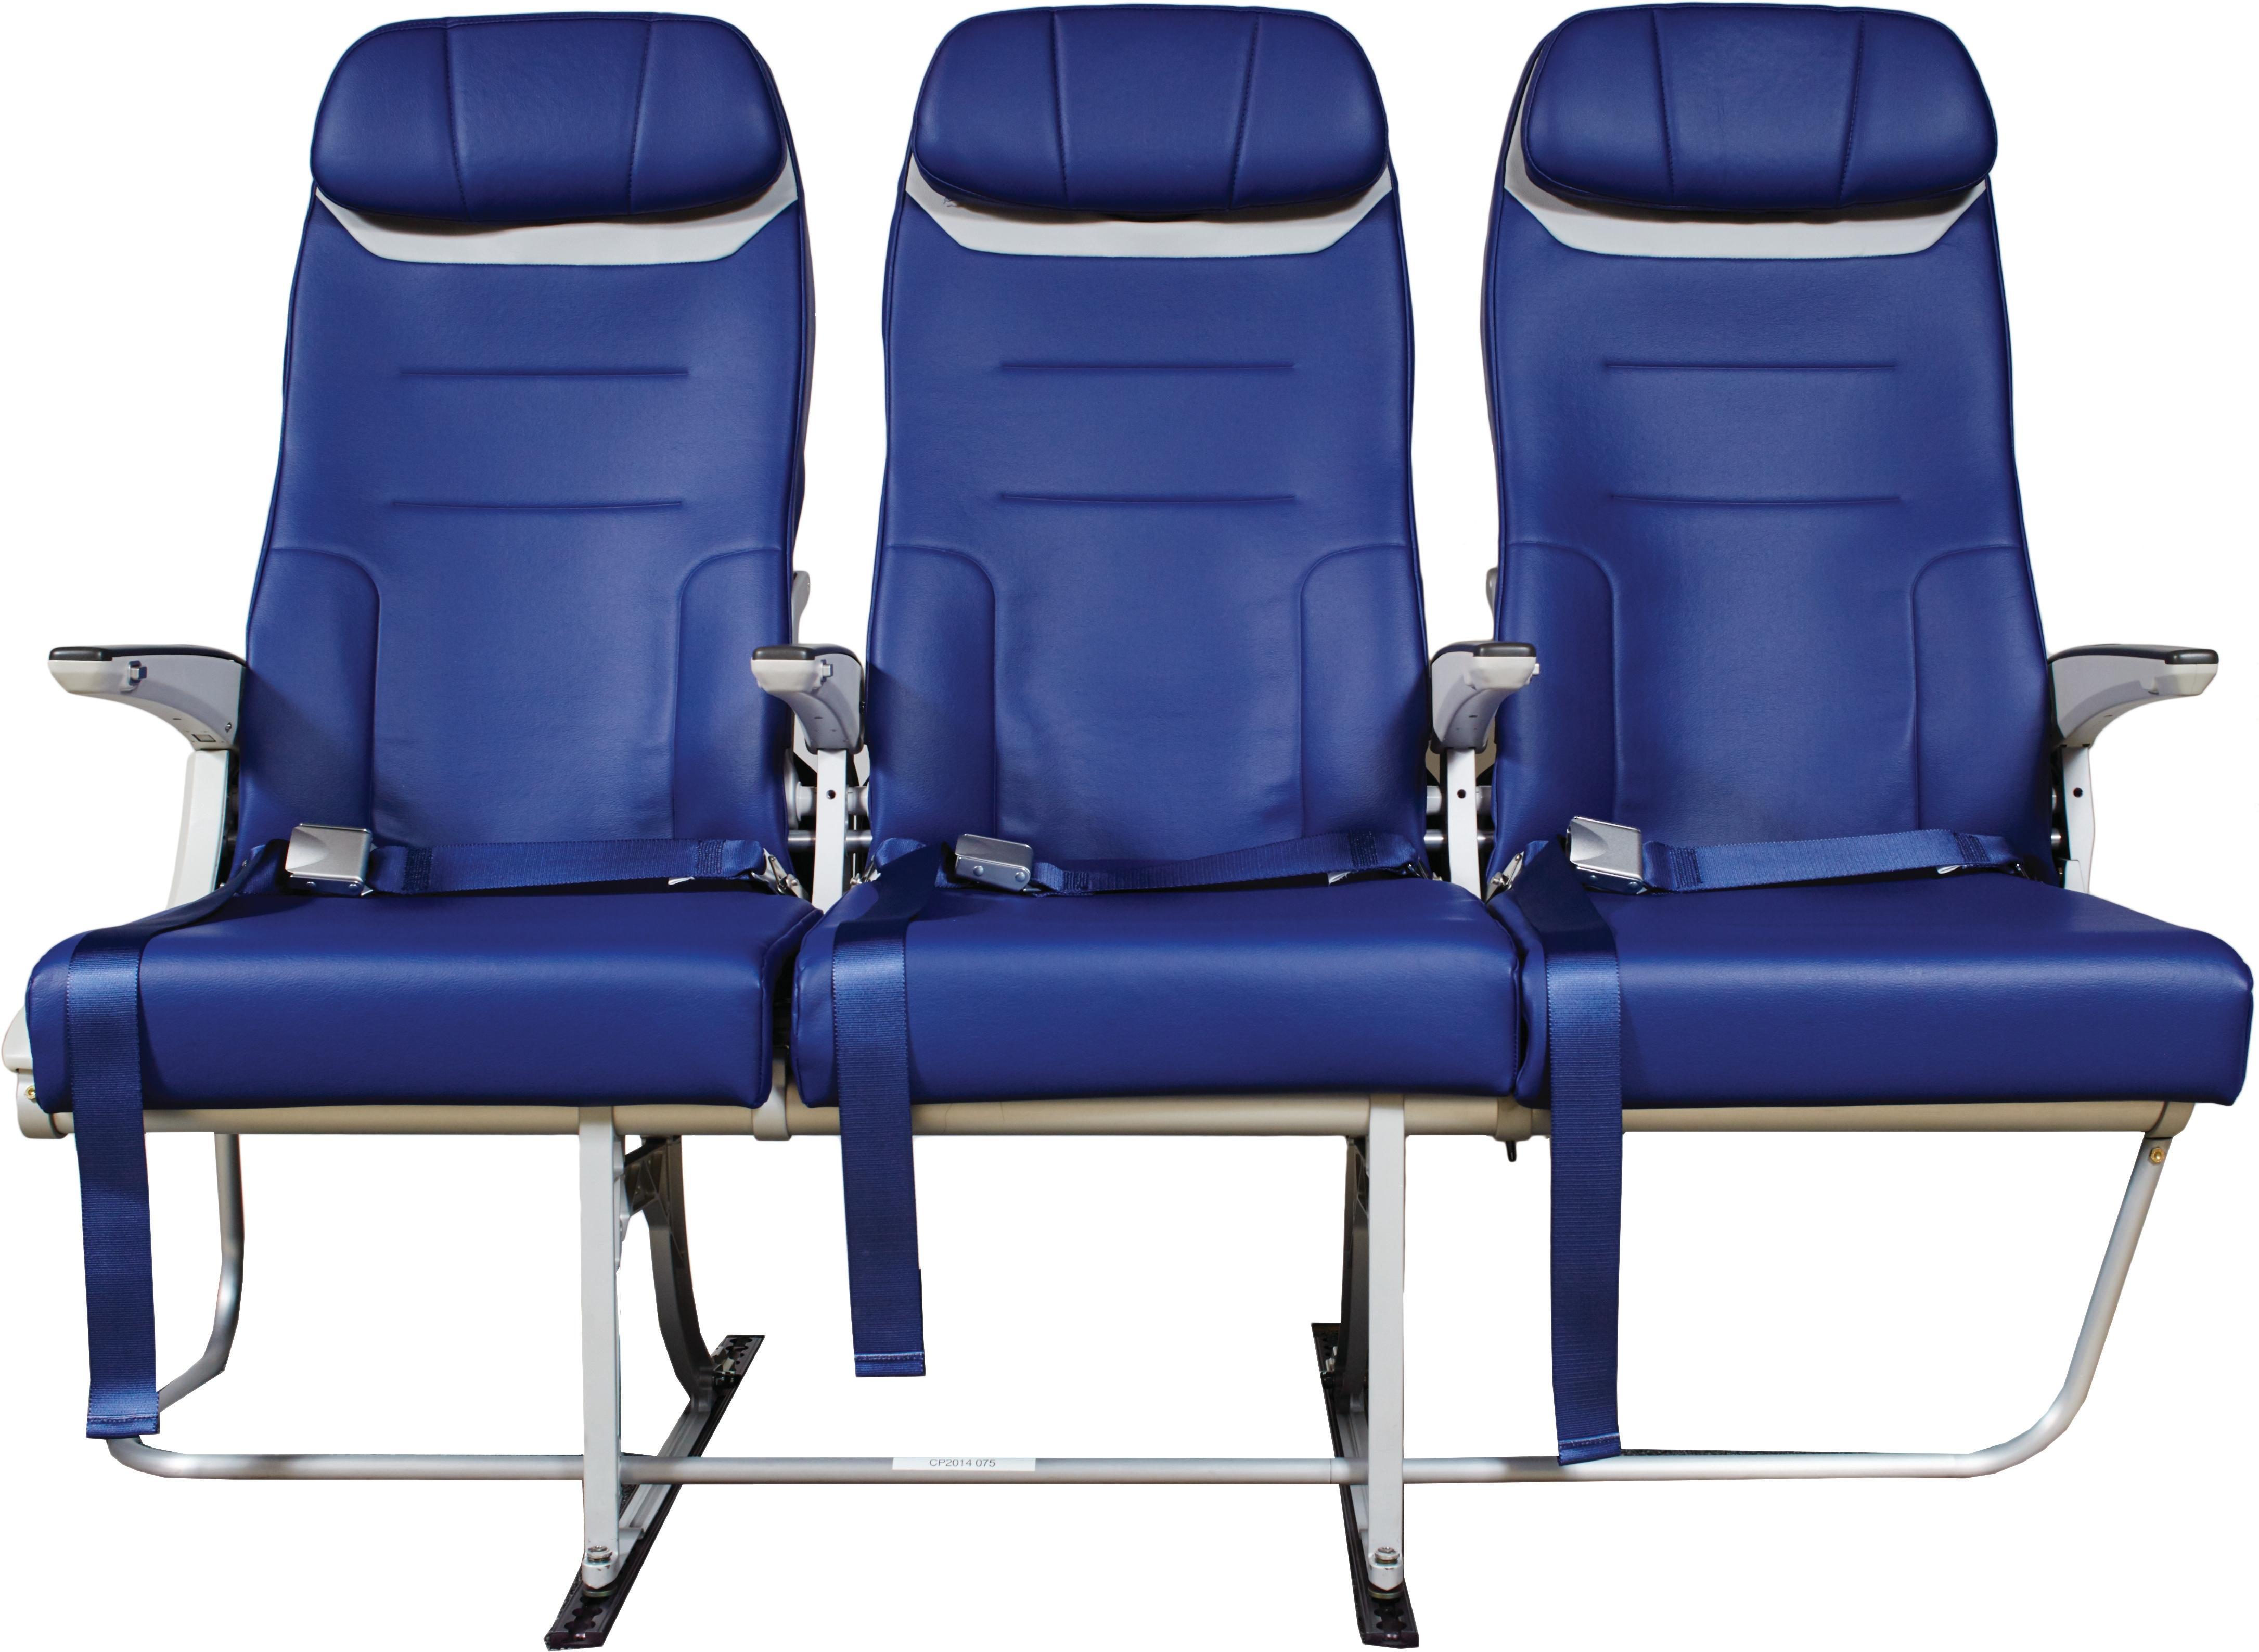 The Economy Class Airline Seat: Here's What's New